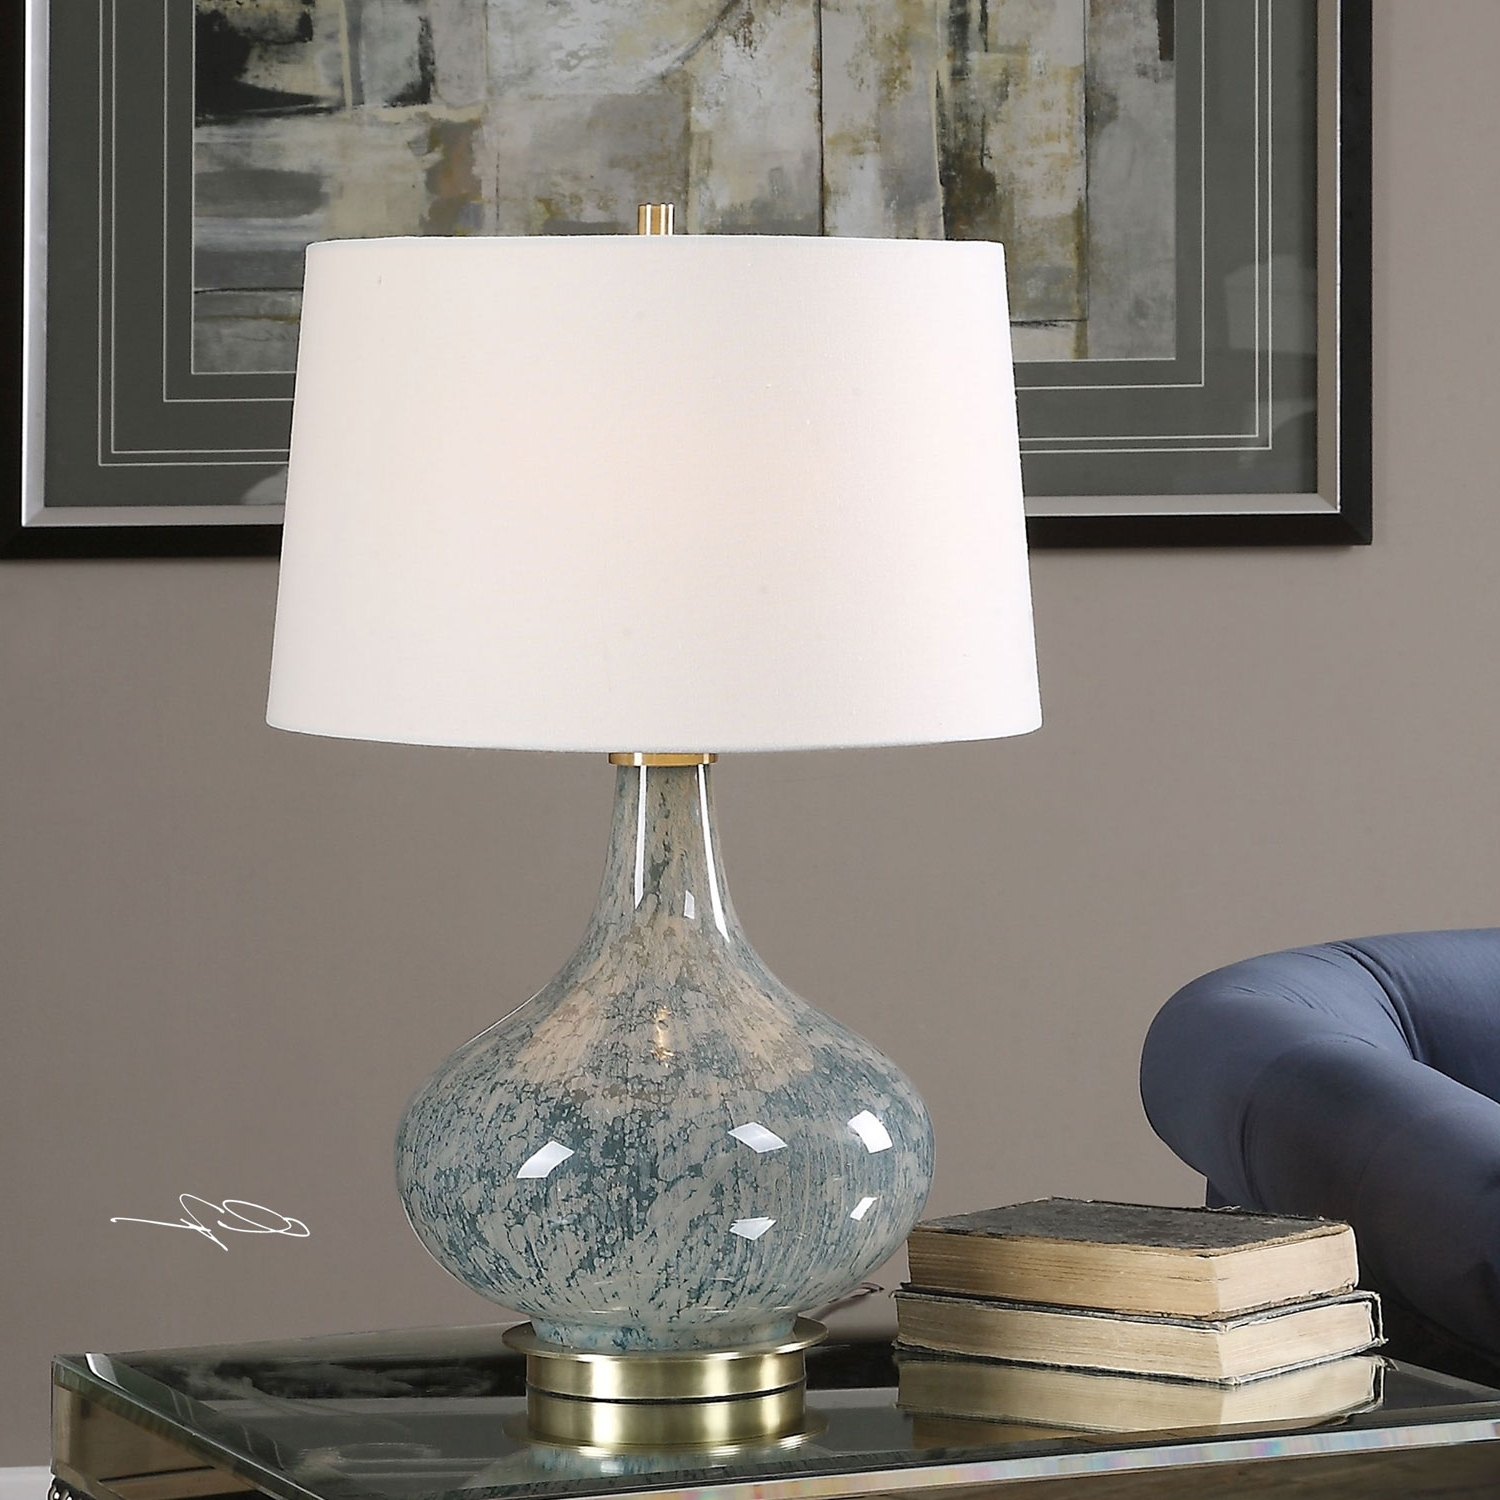 69 Most First Rate Side Lamps Tiffany Table Grey Lamp Gold Large For With Regard To Newest Large Table Lamps For Living Room (View 8 of 15)